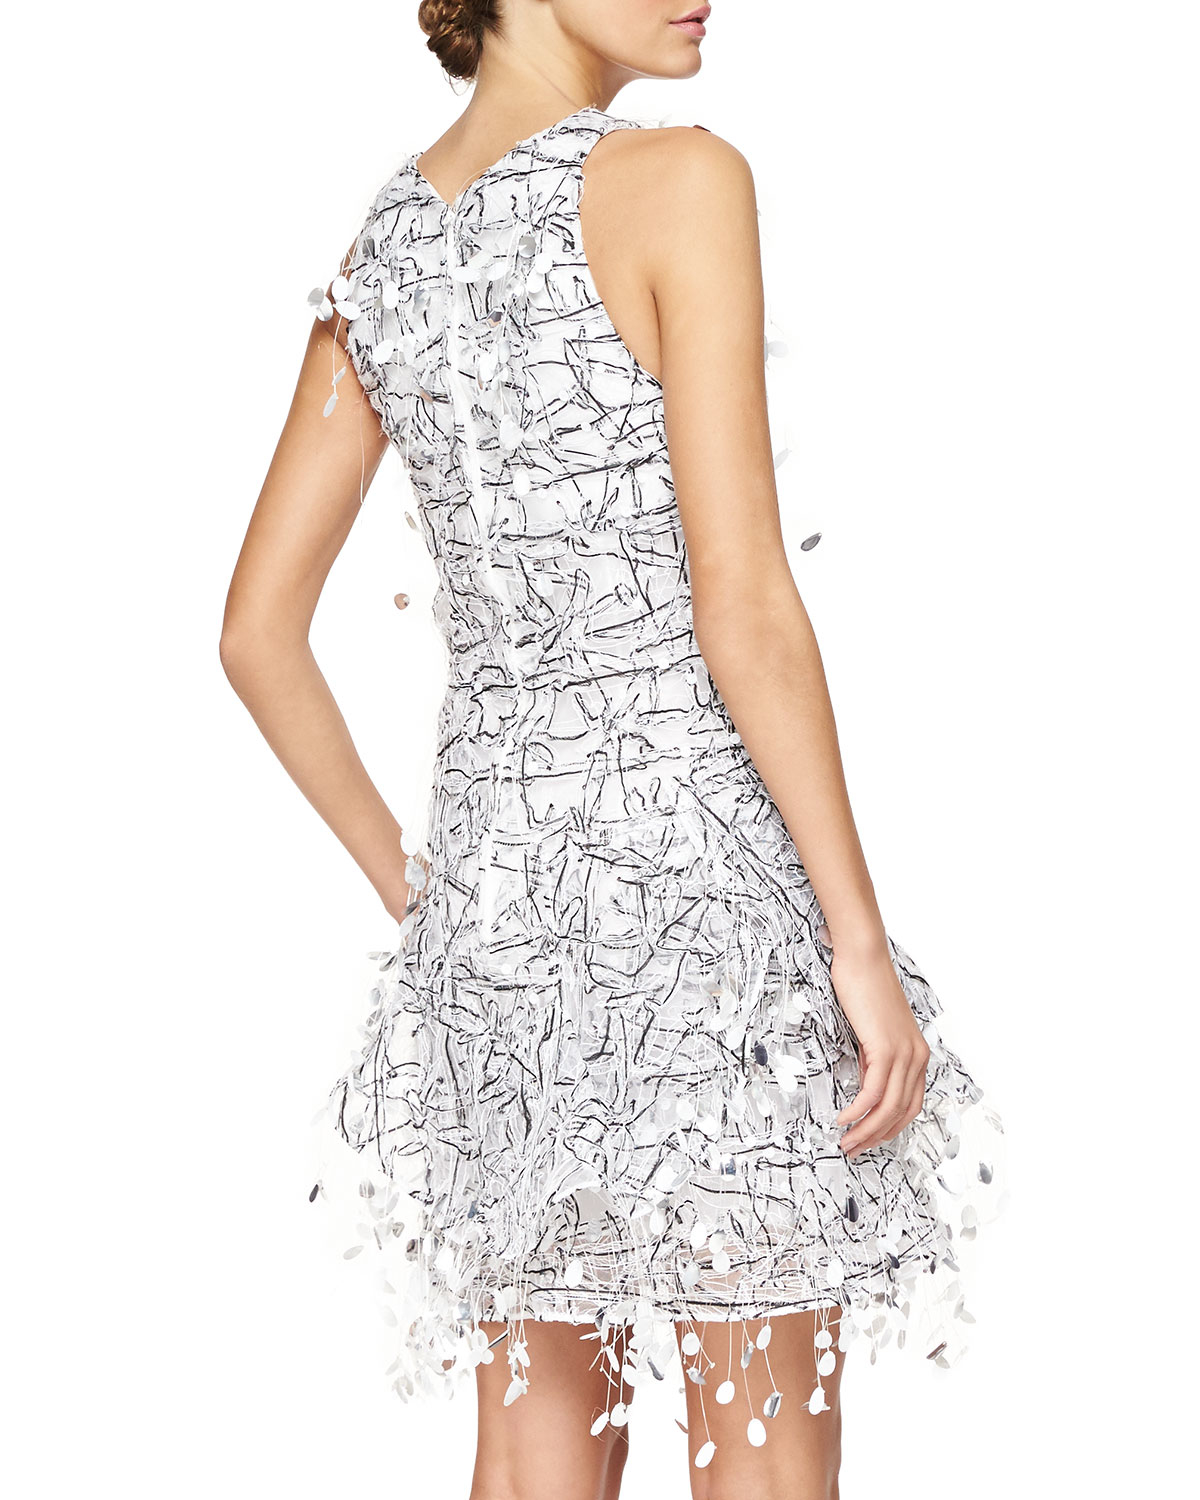 Paillette Cocktail Dress